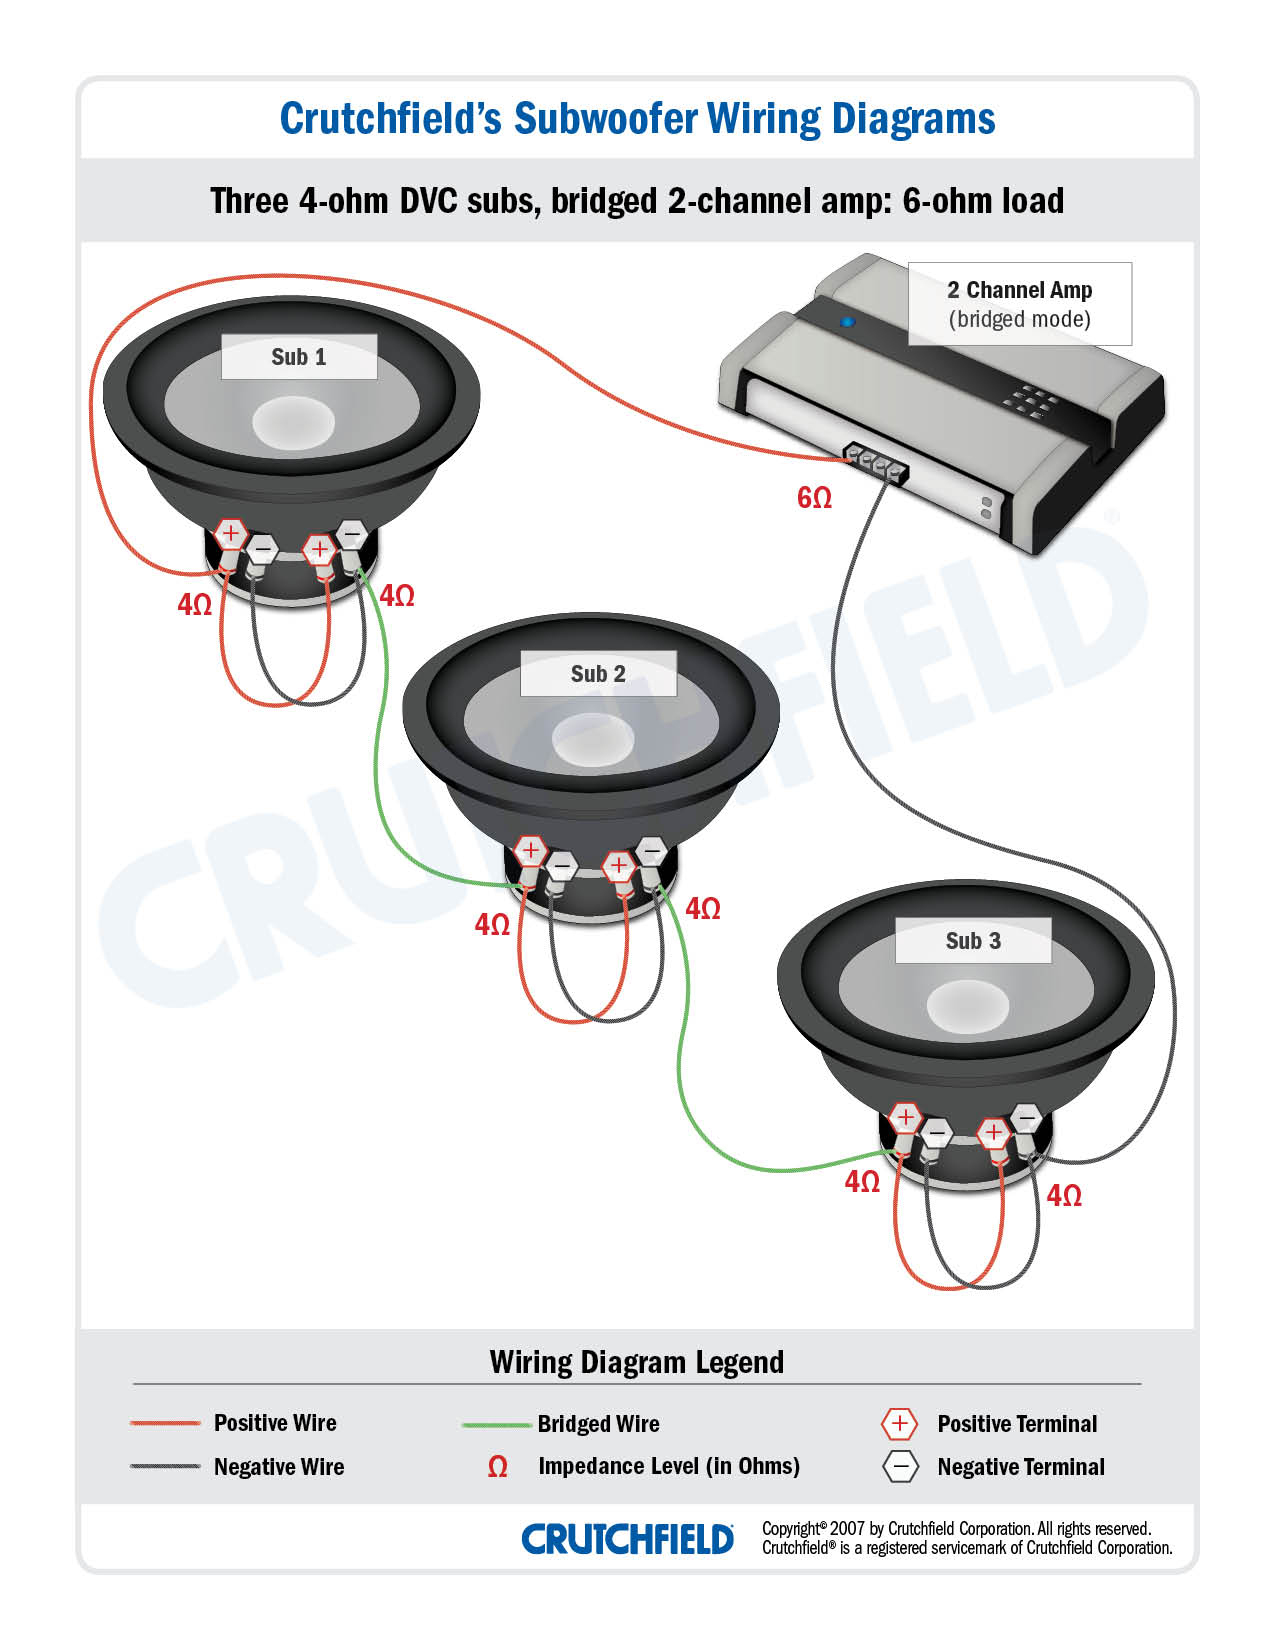 Jl Audio 500 1 Wiring | Wiring Diagram - Jl Audio 500 1 Wiring Diagram